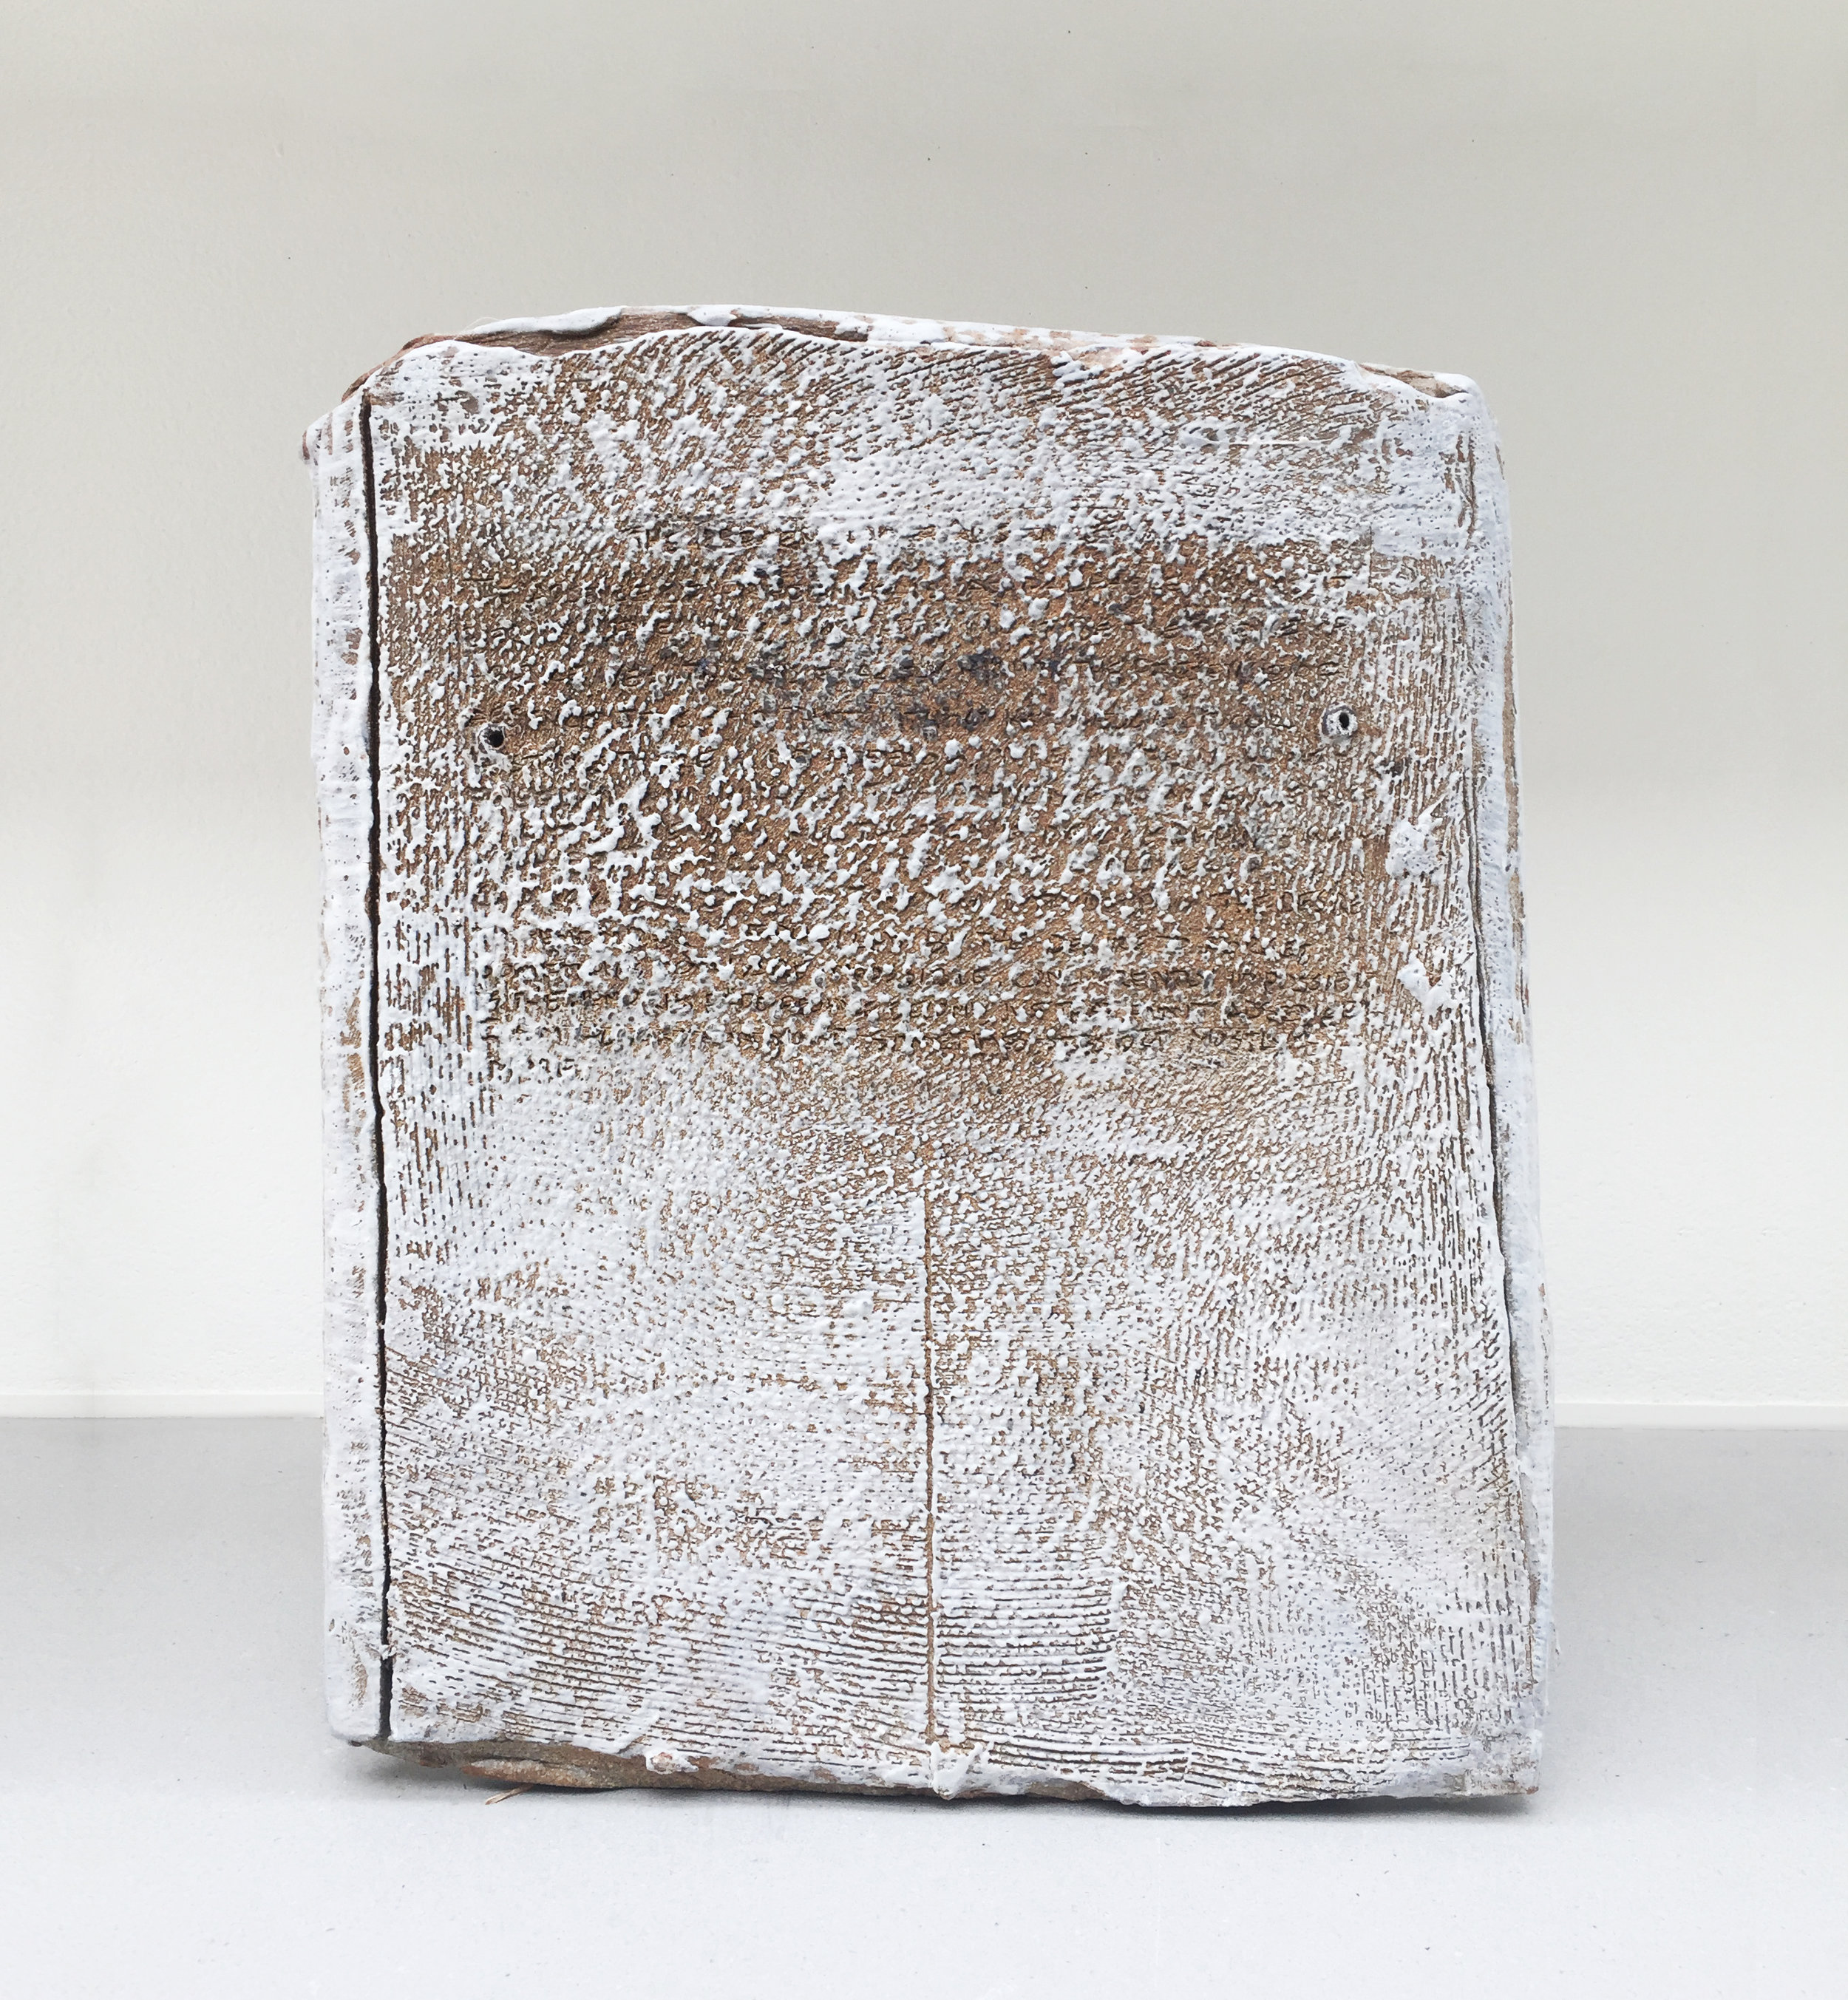 Toni Ross  Stele #29 , 2016 stoneware and slip 13 5/8 x 11 3/8 x 5 in.